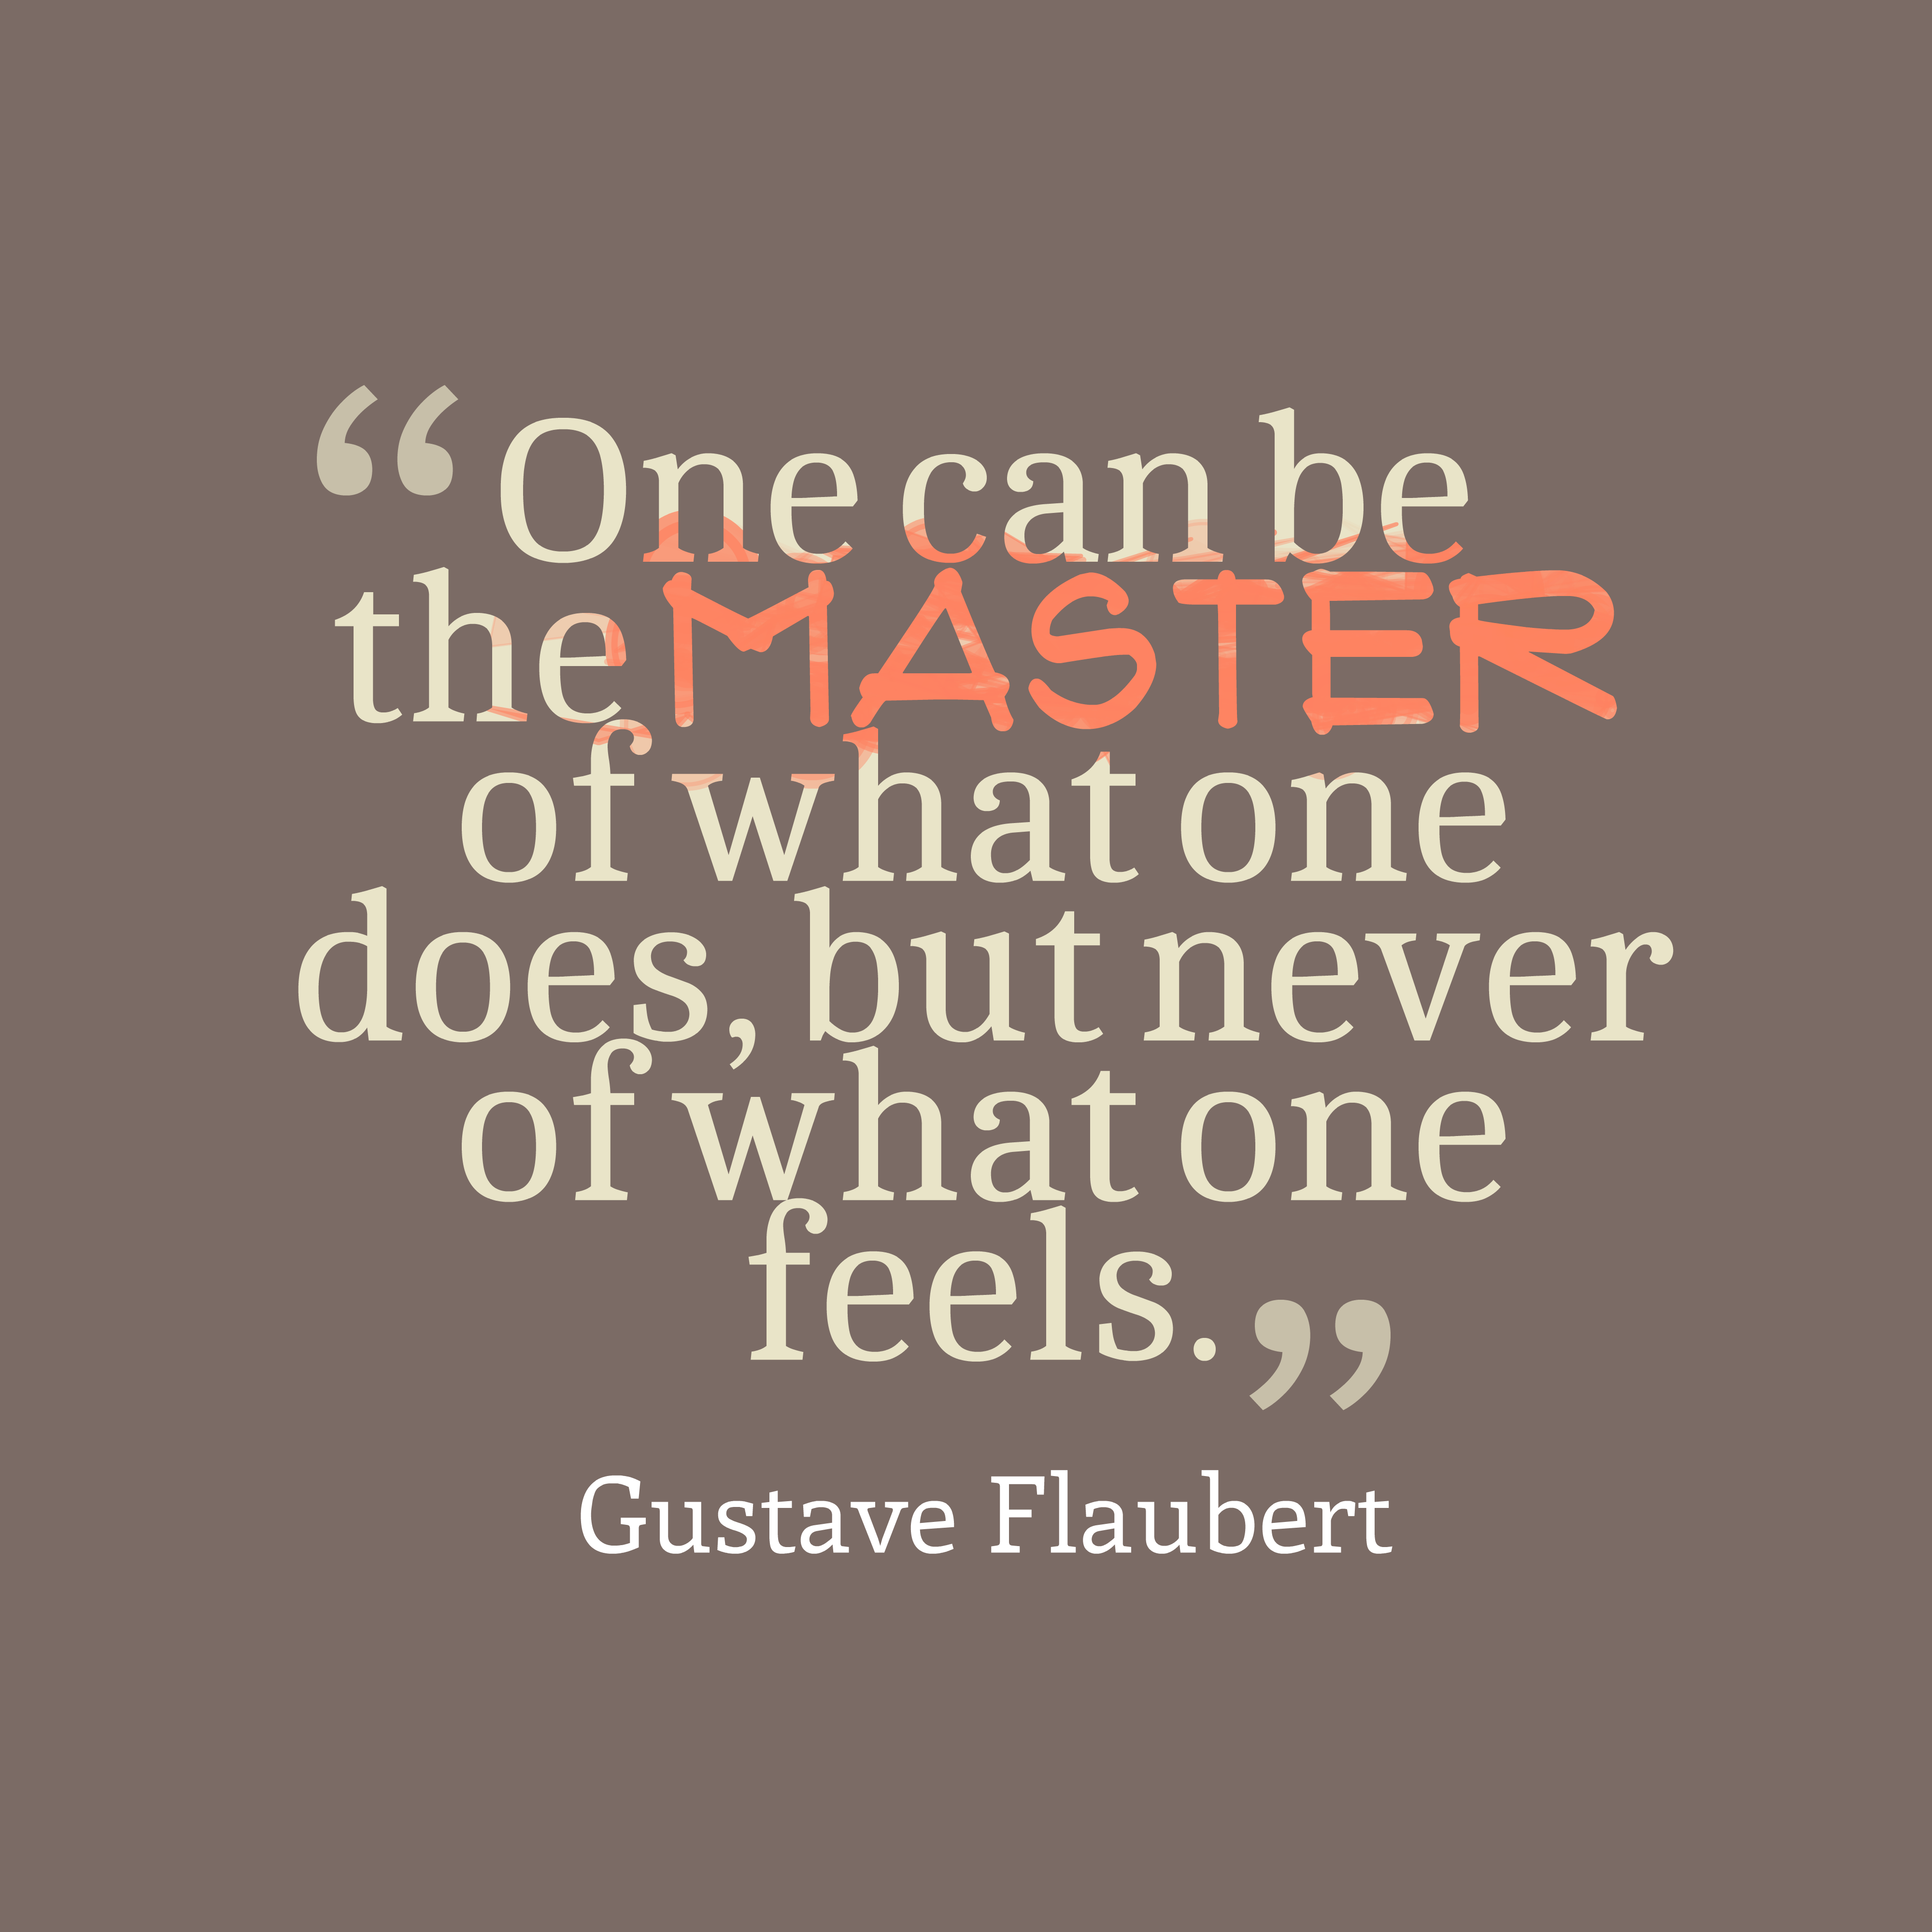 Quotes image of One can be the master of what one does, but never of what one feels.